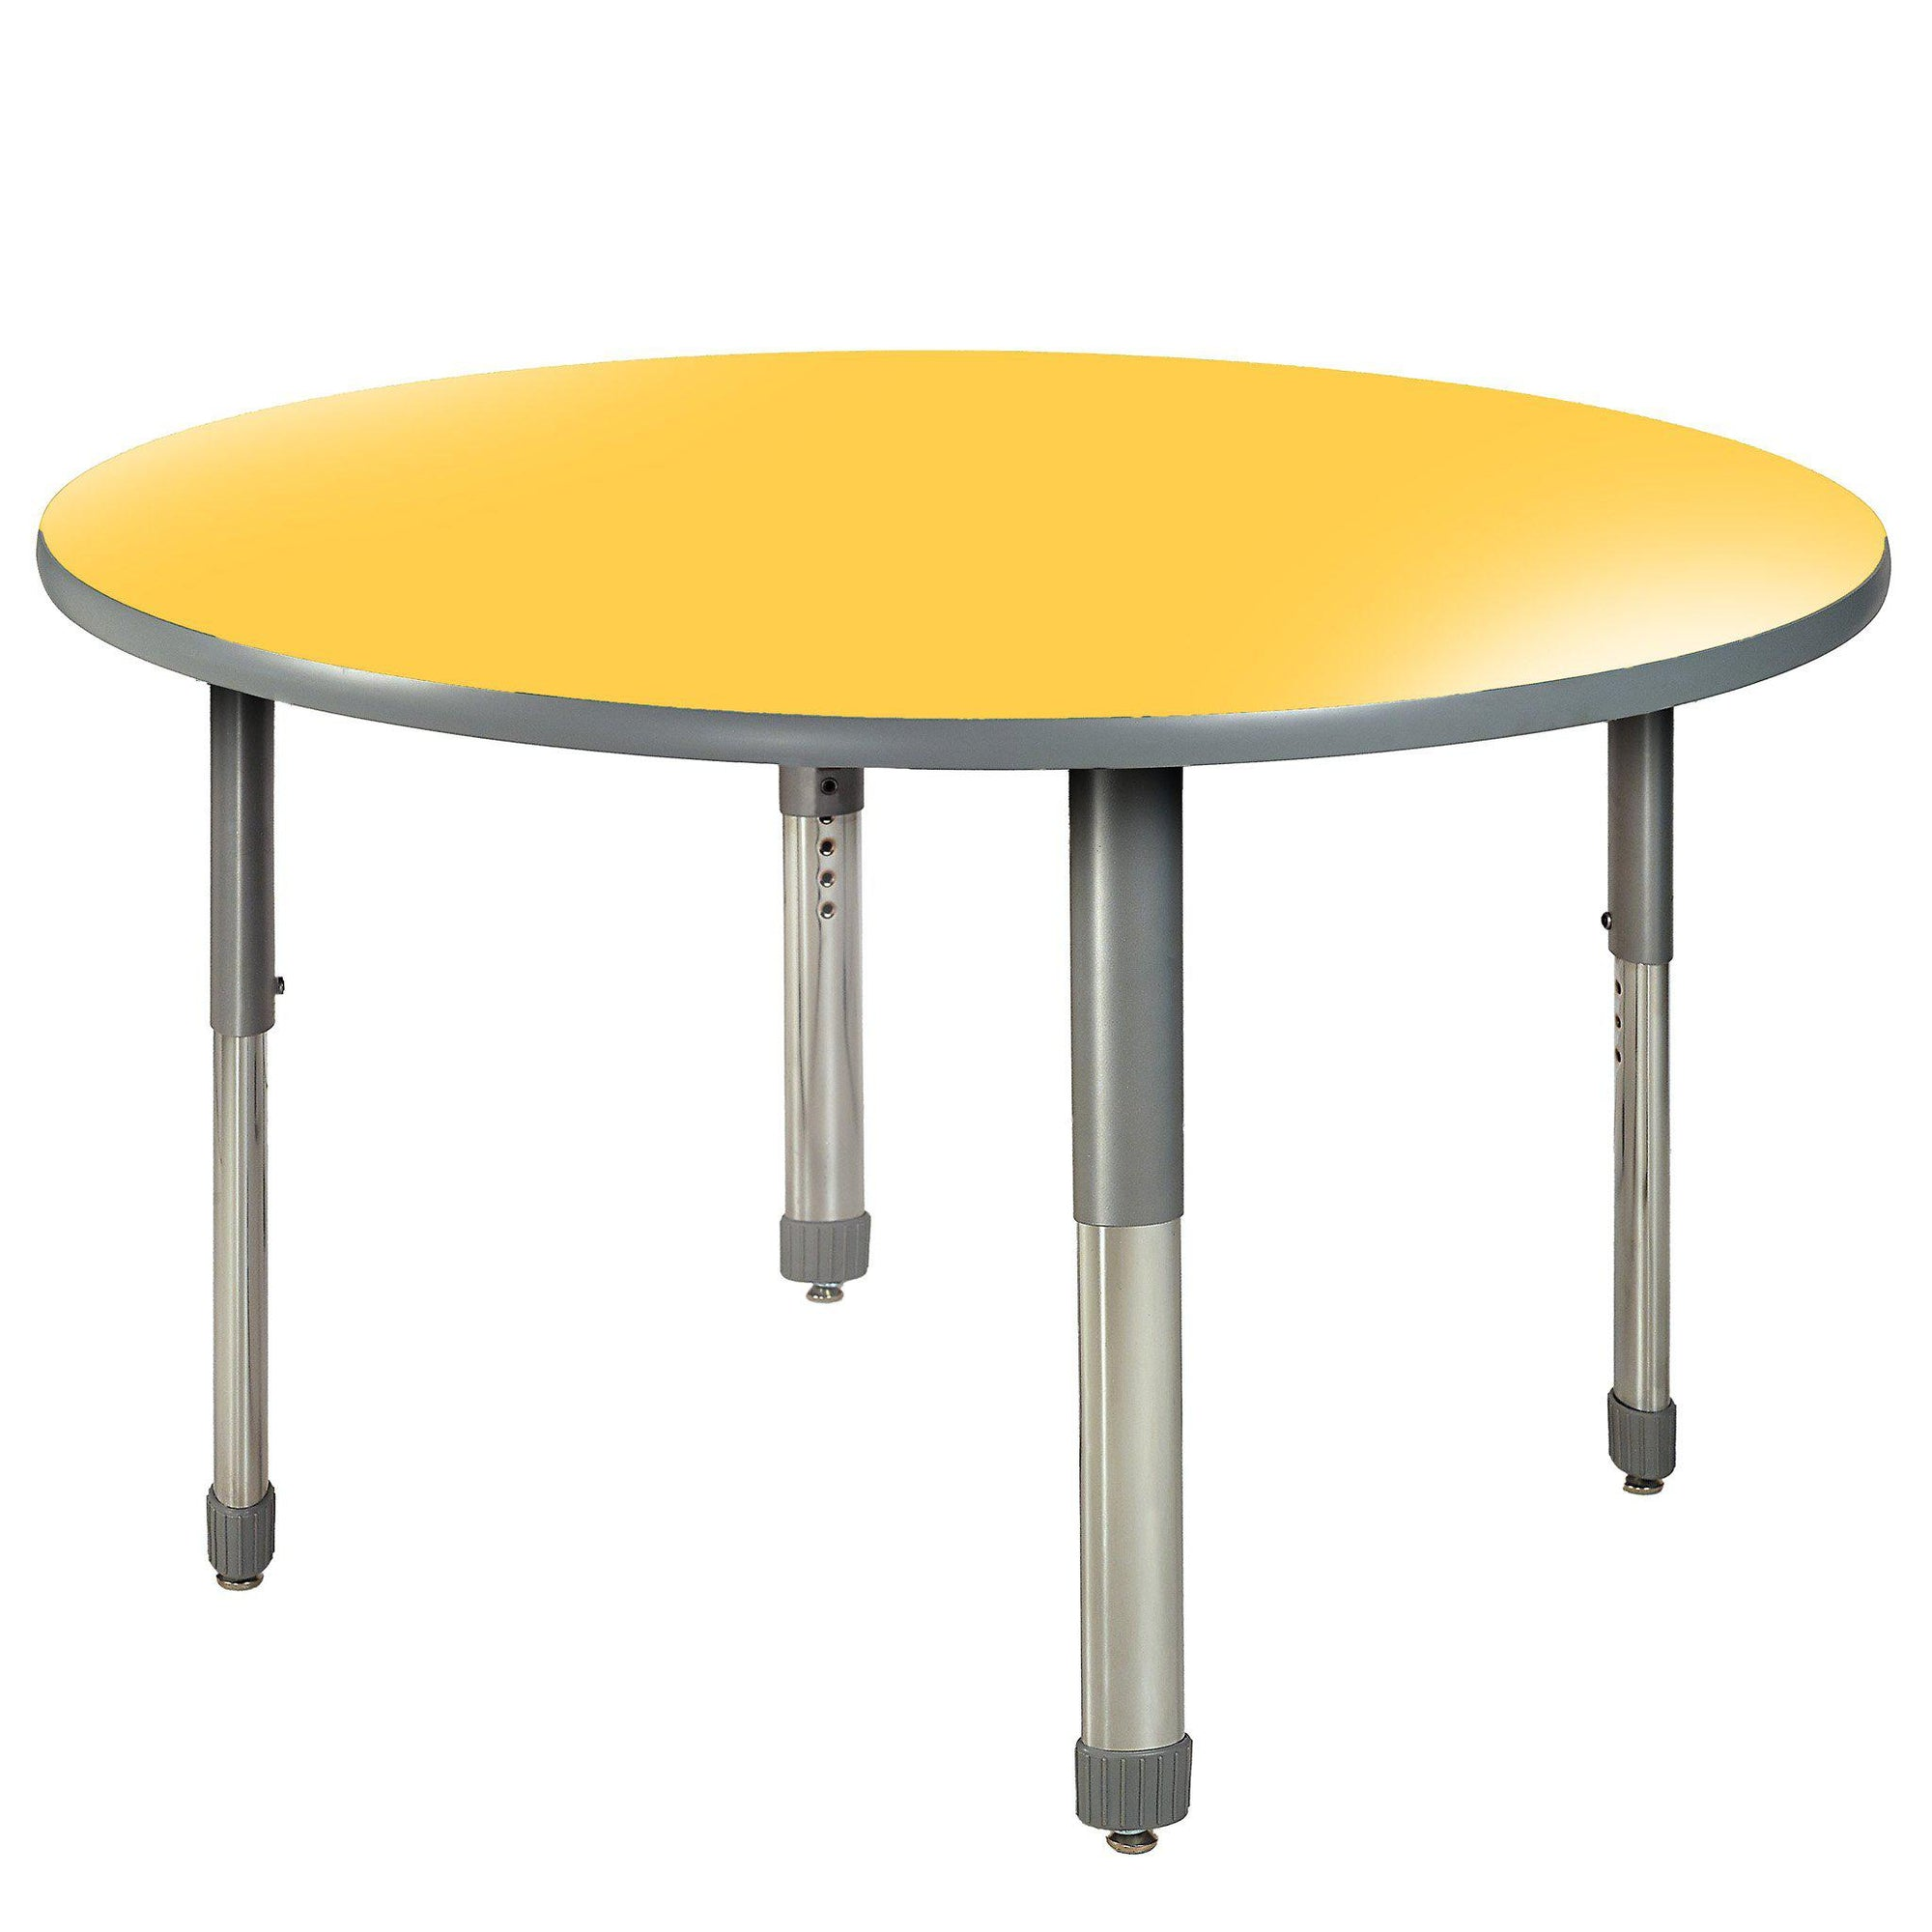 "Aero Activity Table, 36"" Circle, Oval Adjustable Height Legs"